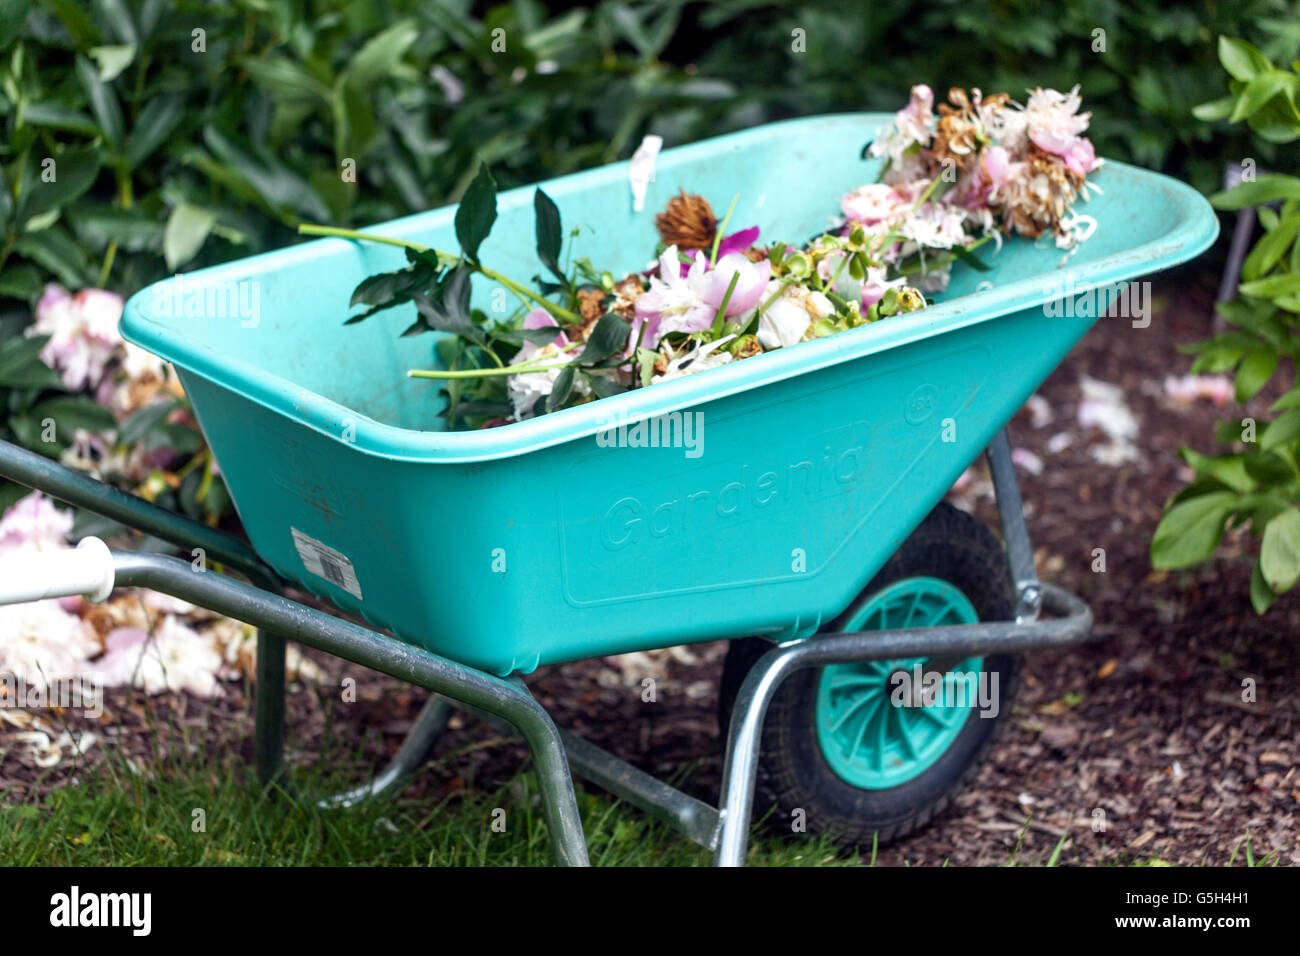 overblown stems and flowers of peonies in the garden wheelbarrow - Stock Image